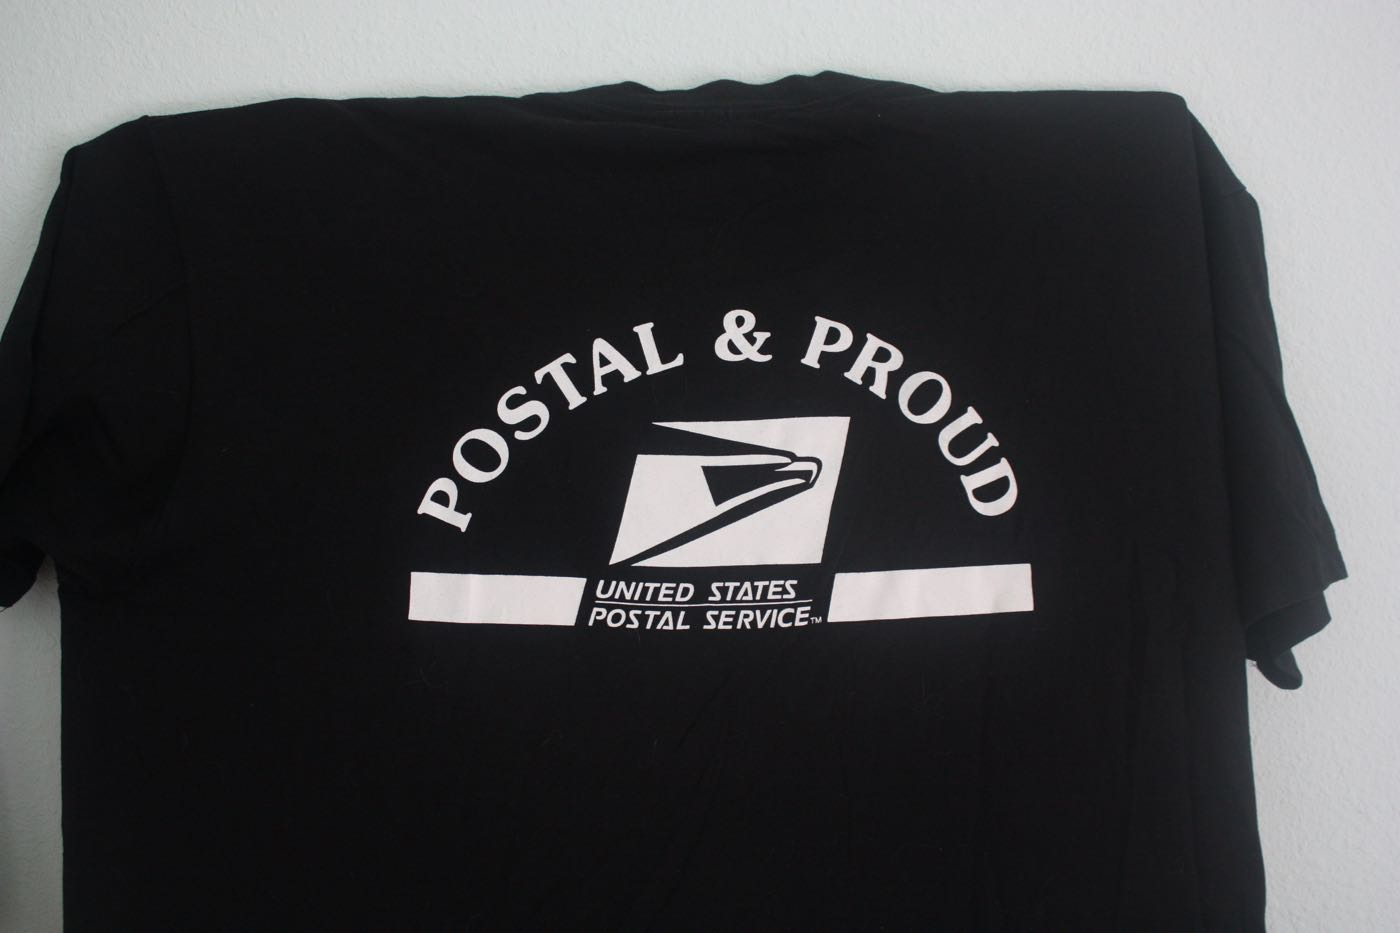 Postal and Proud Post Office Tee 1